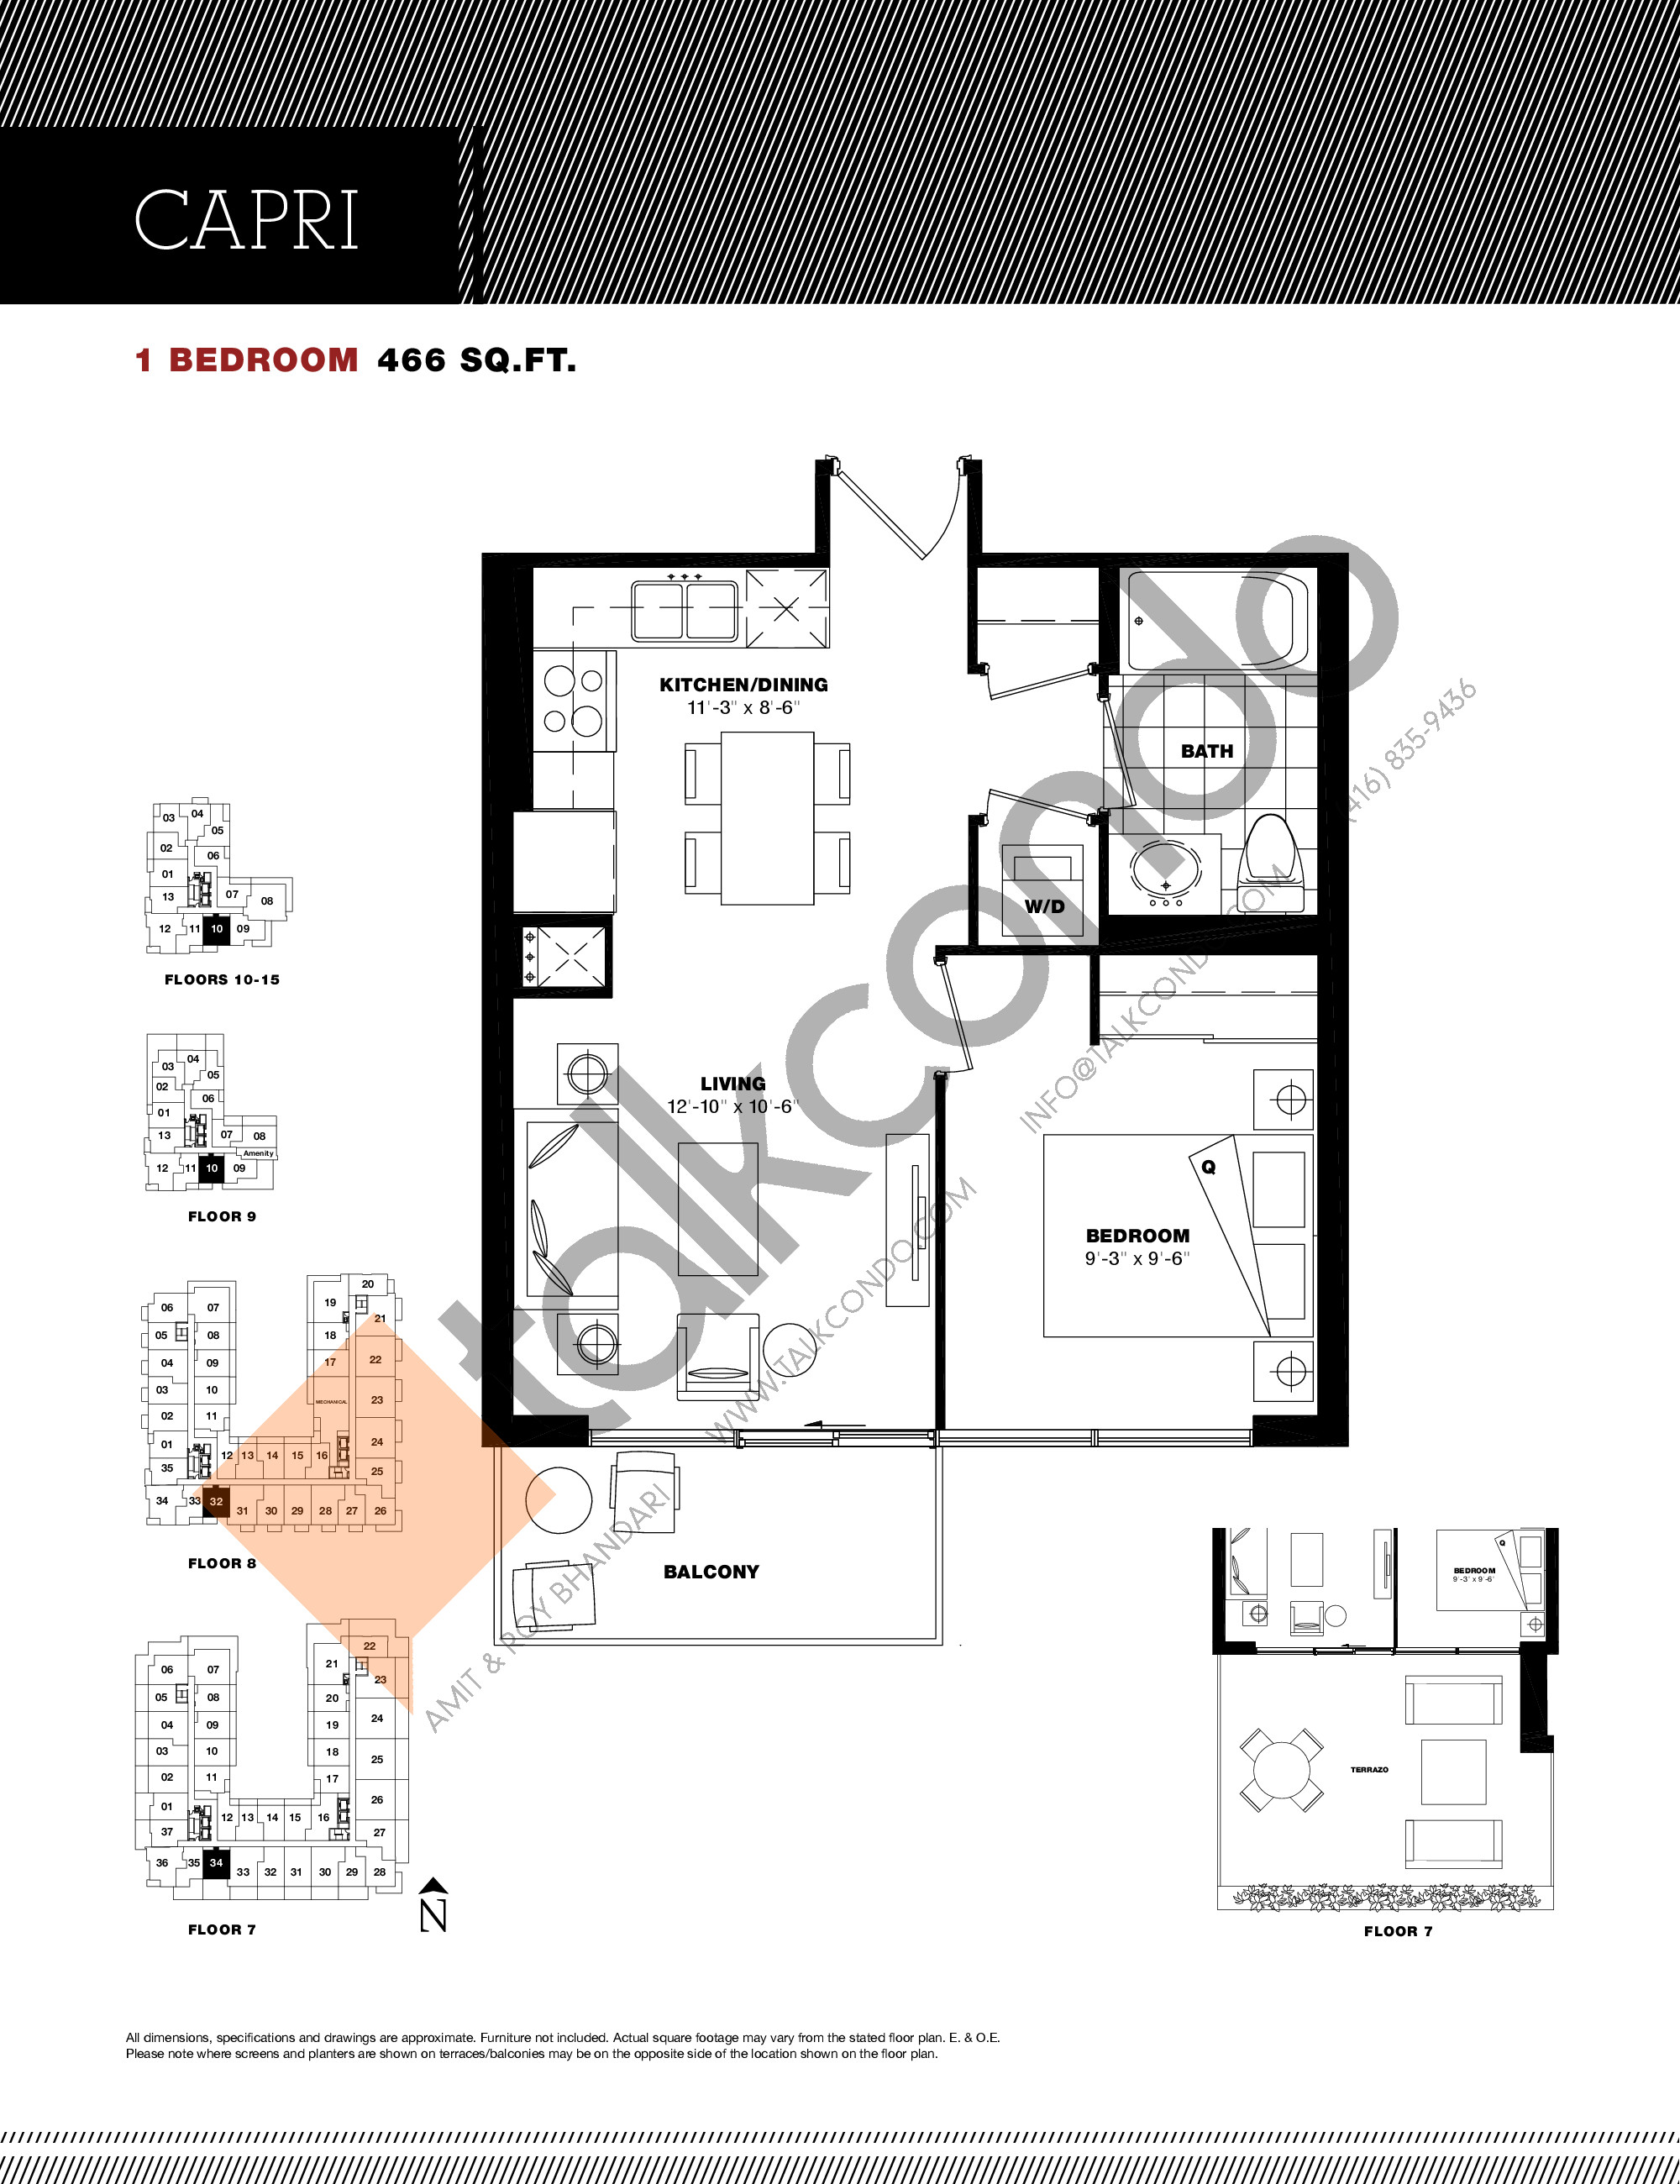 Capri Floor Plan at Residenze Palazzo at Treviso 3 Condos - 466 sq.ft